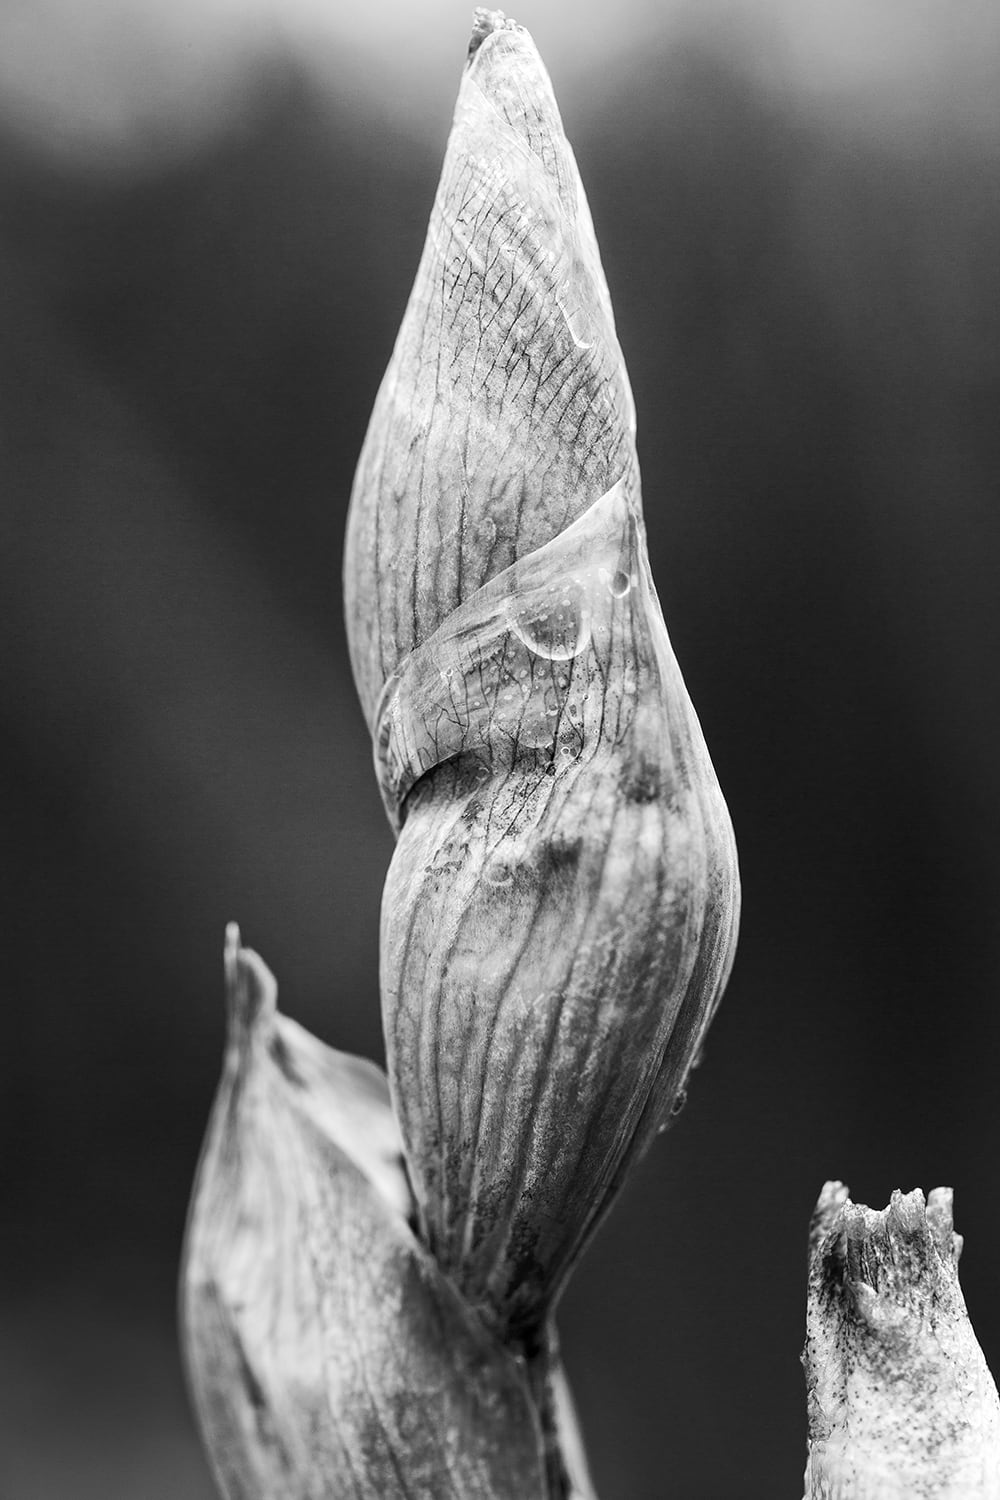 Black and white macro photograph of tightly wound Spring blooms. Black and white photograph by Keith Dotson.